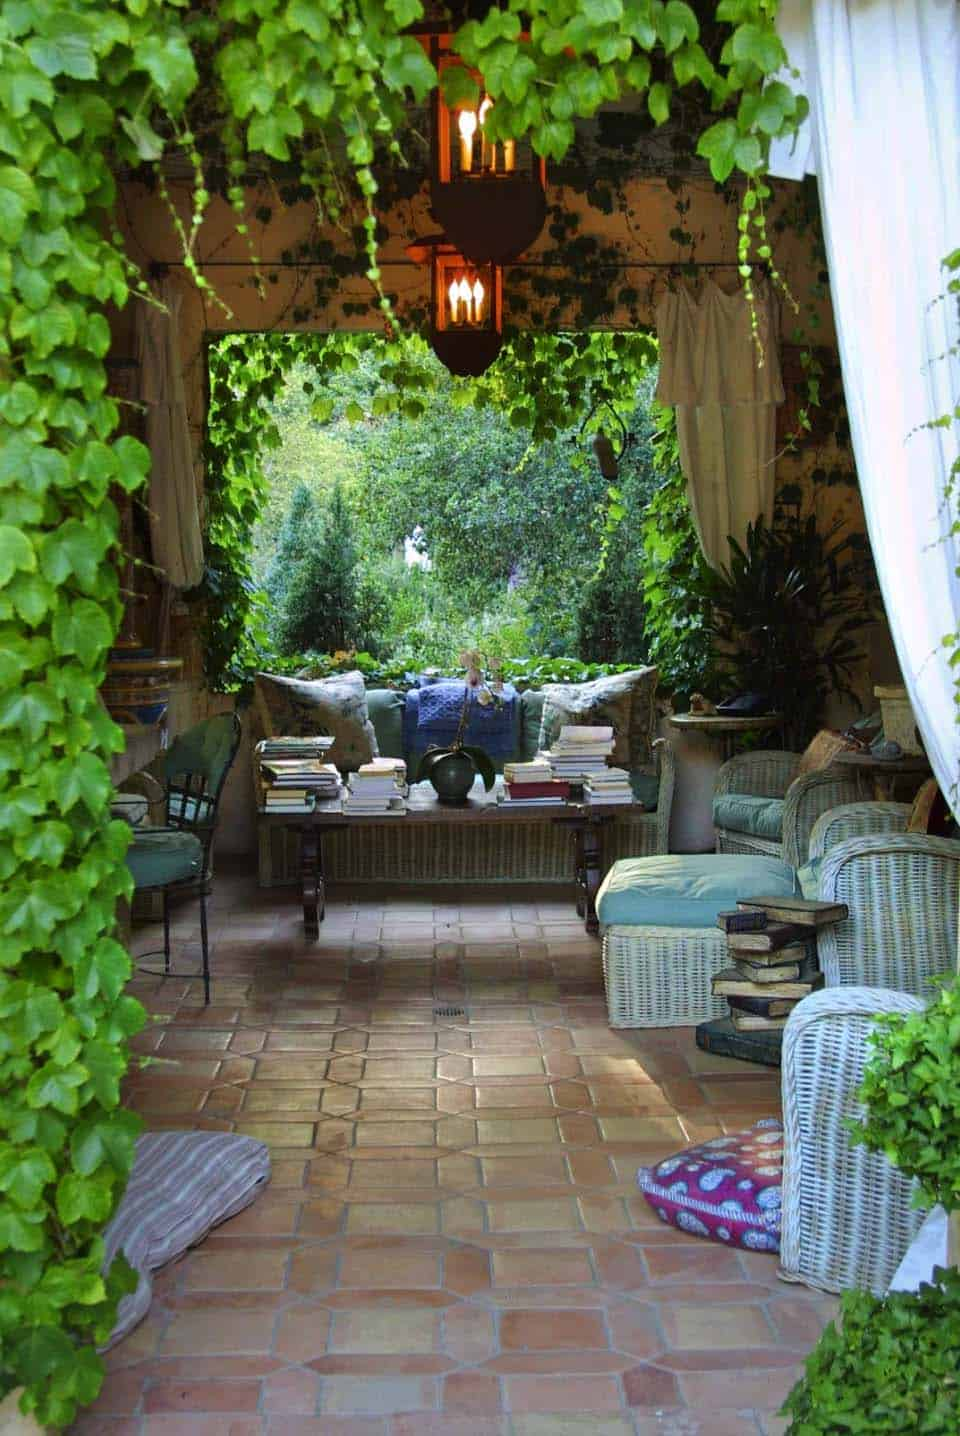 35 Brilliant and inspiring patio ideas for outdoor living ... on Small Backyard Entertainment Area Ideas id=52756